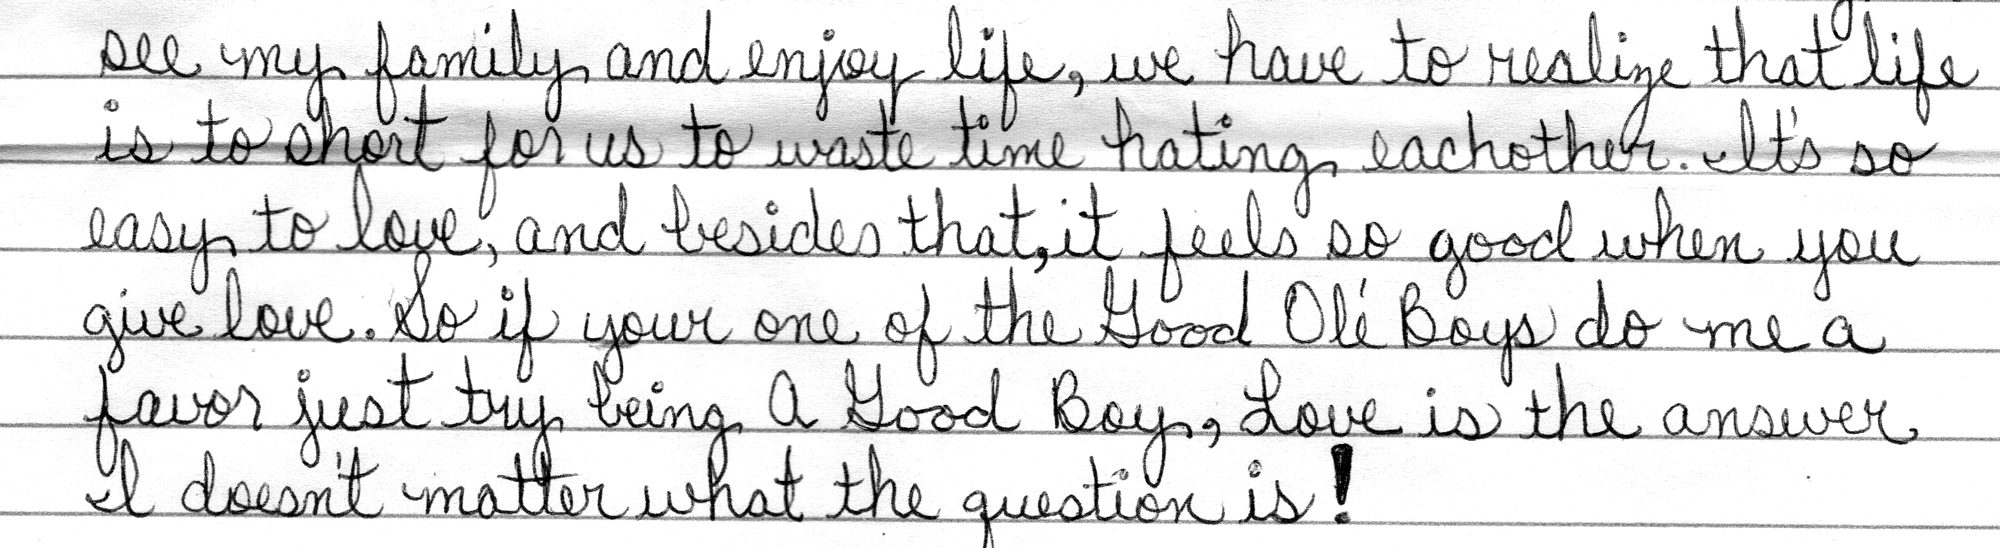 This is an excerpt of the cursive handwriting on lined paper from which the article is transcribed.